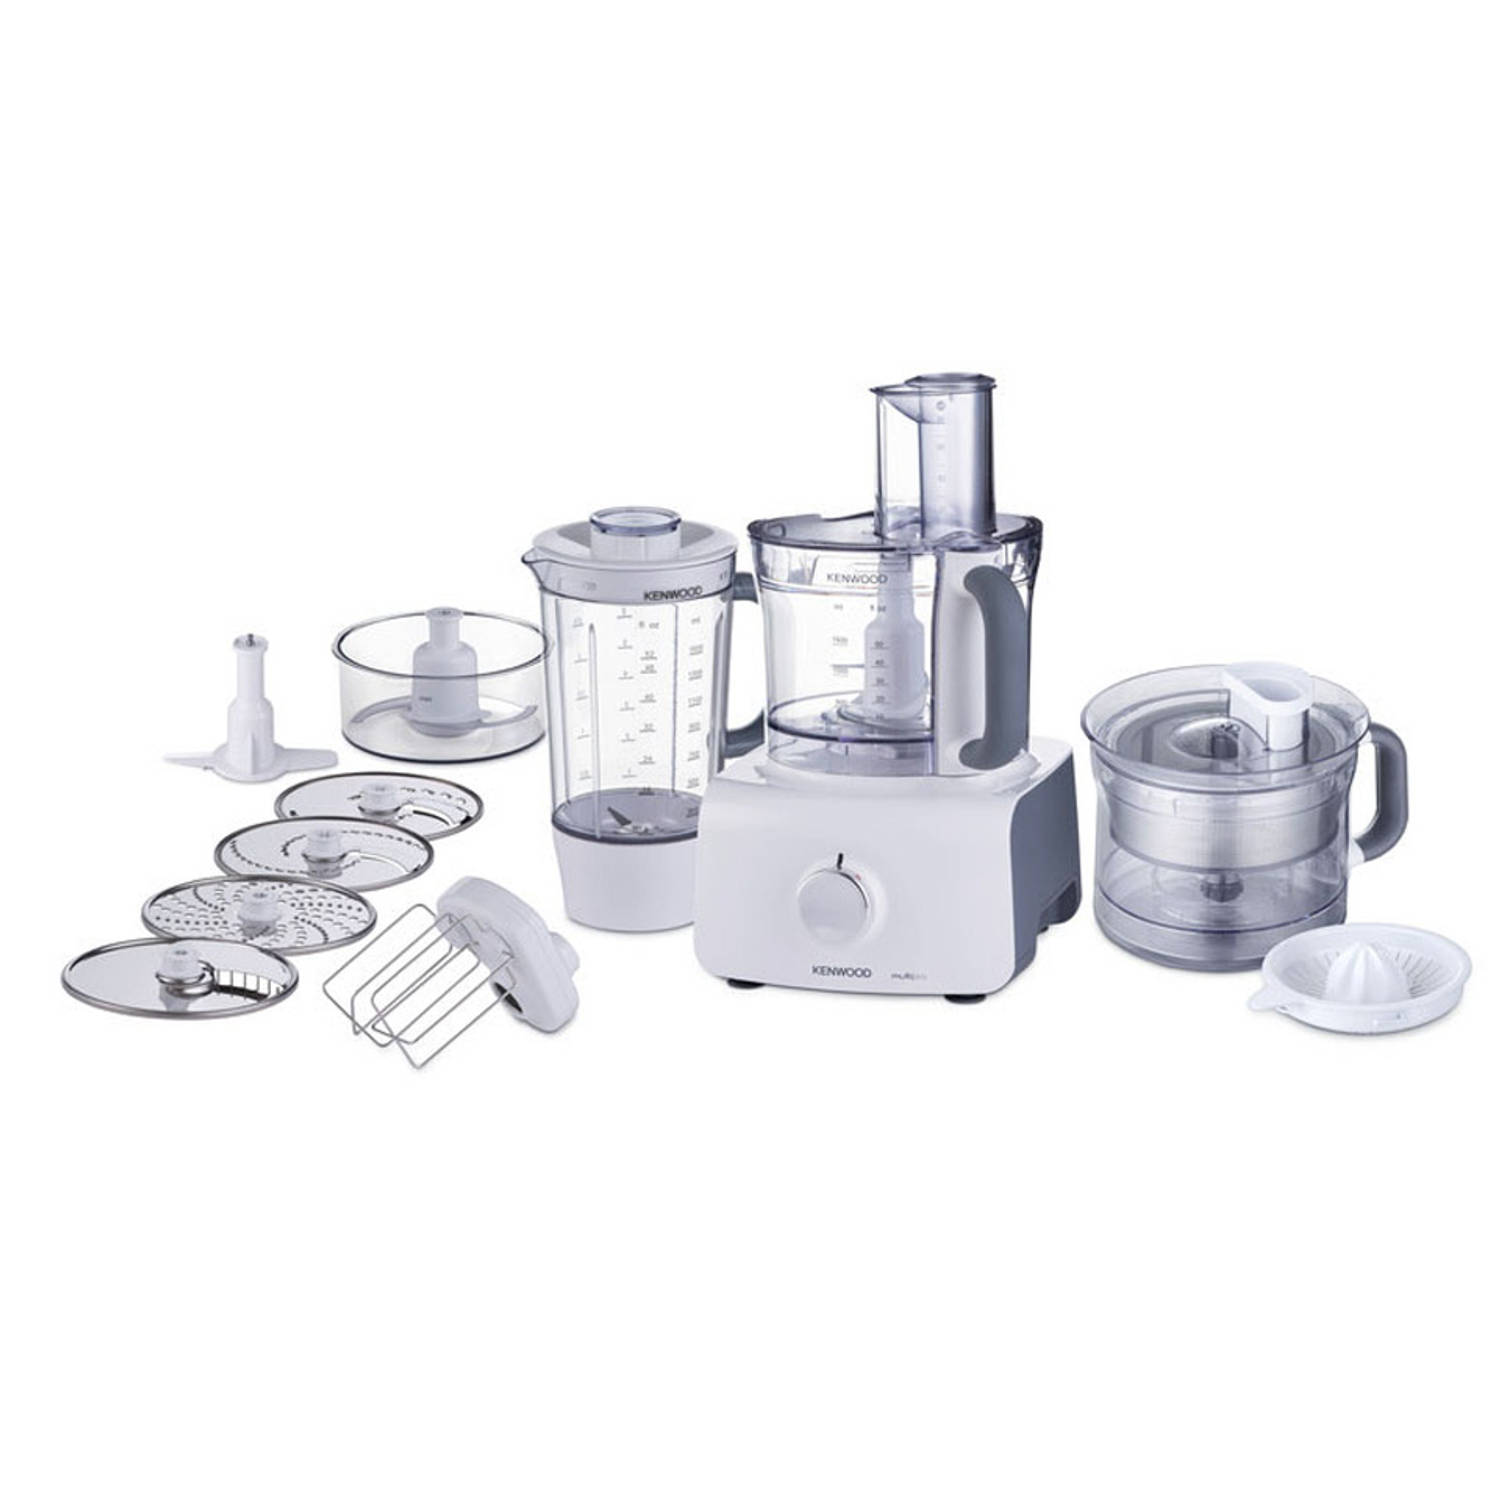 Kenwood Multipro Home FDP623WH foodprocessor